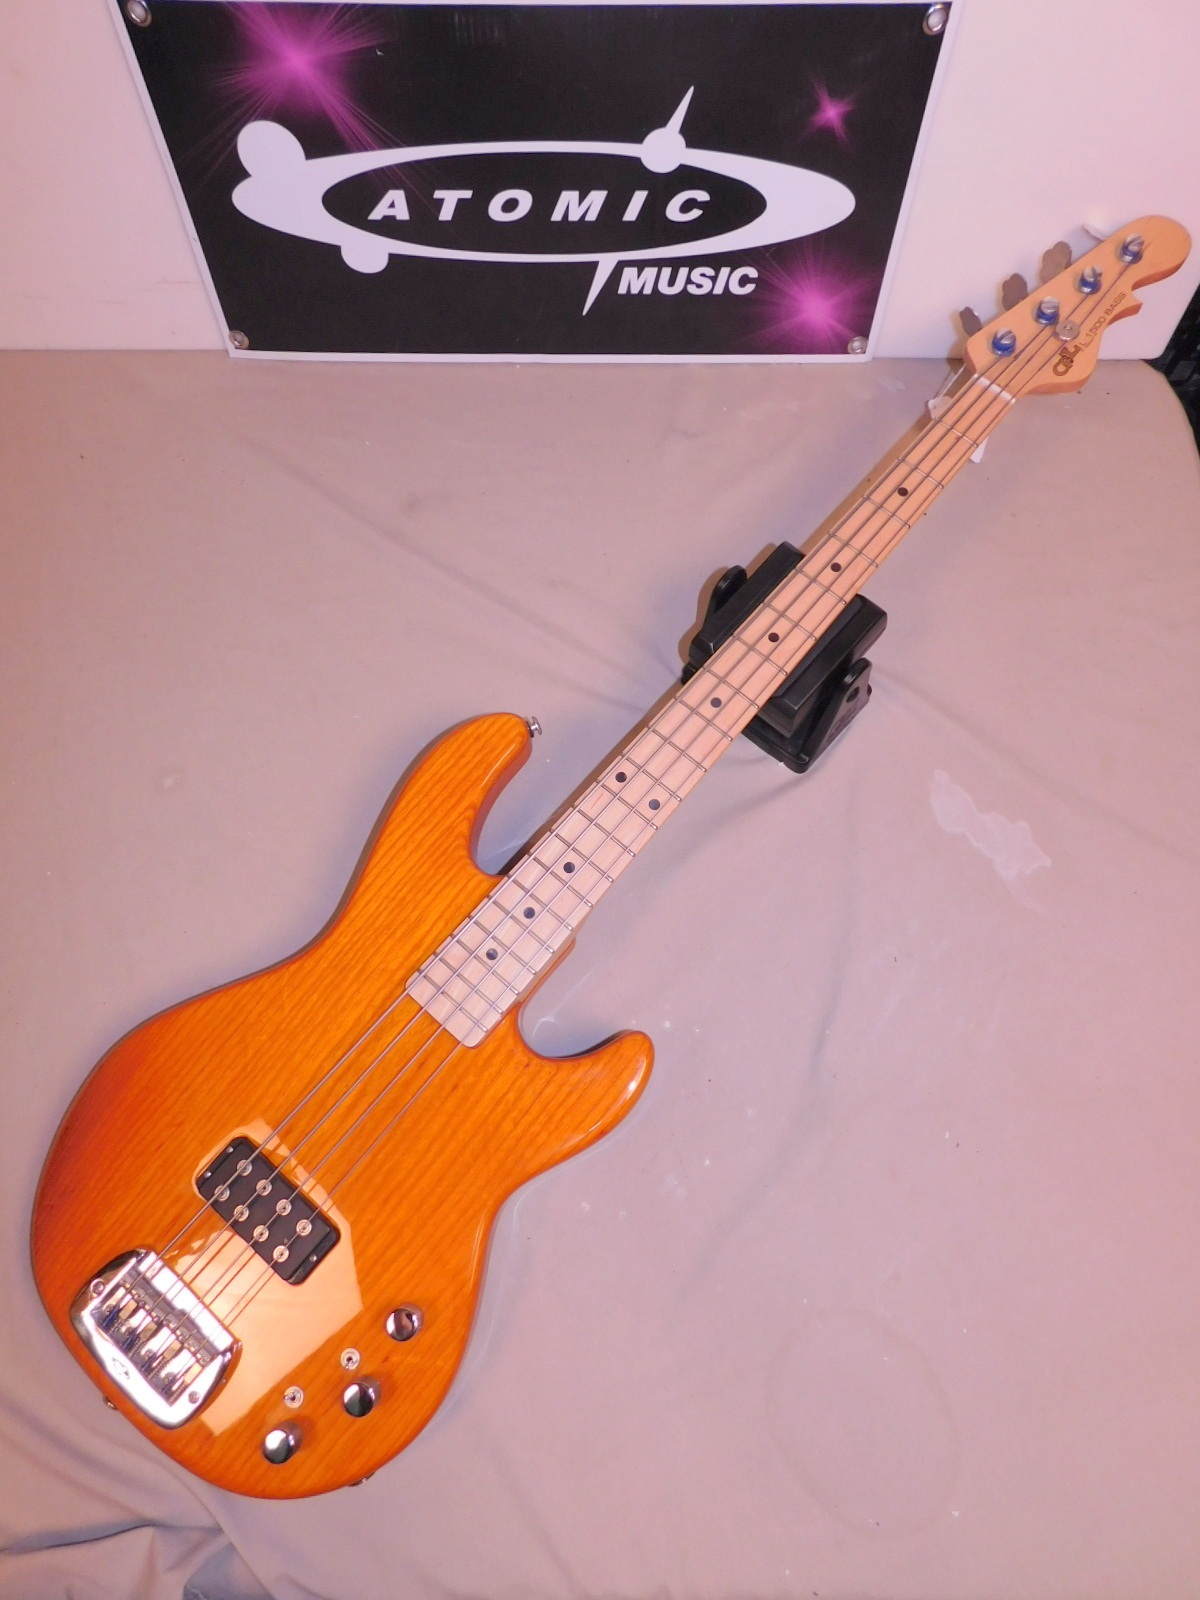 G&L L-1500 Wood Grain with Orange Tint Electric BASS GUITAR - GOOD CONDITION!!!